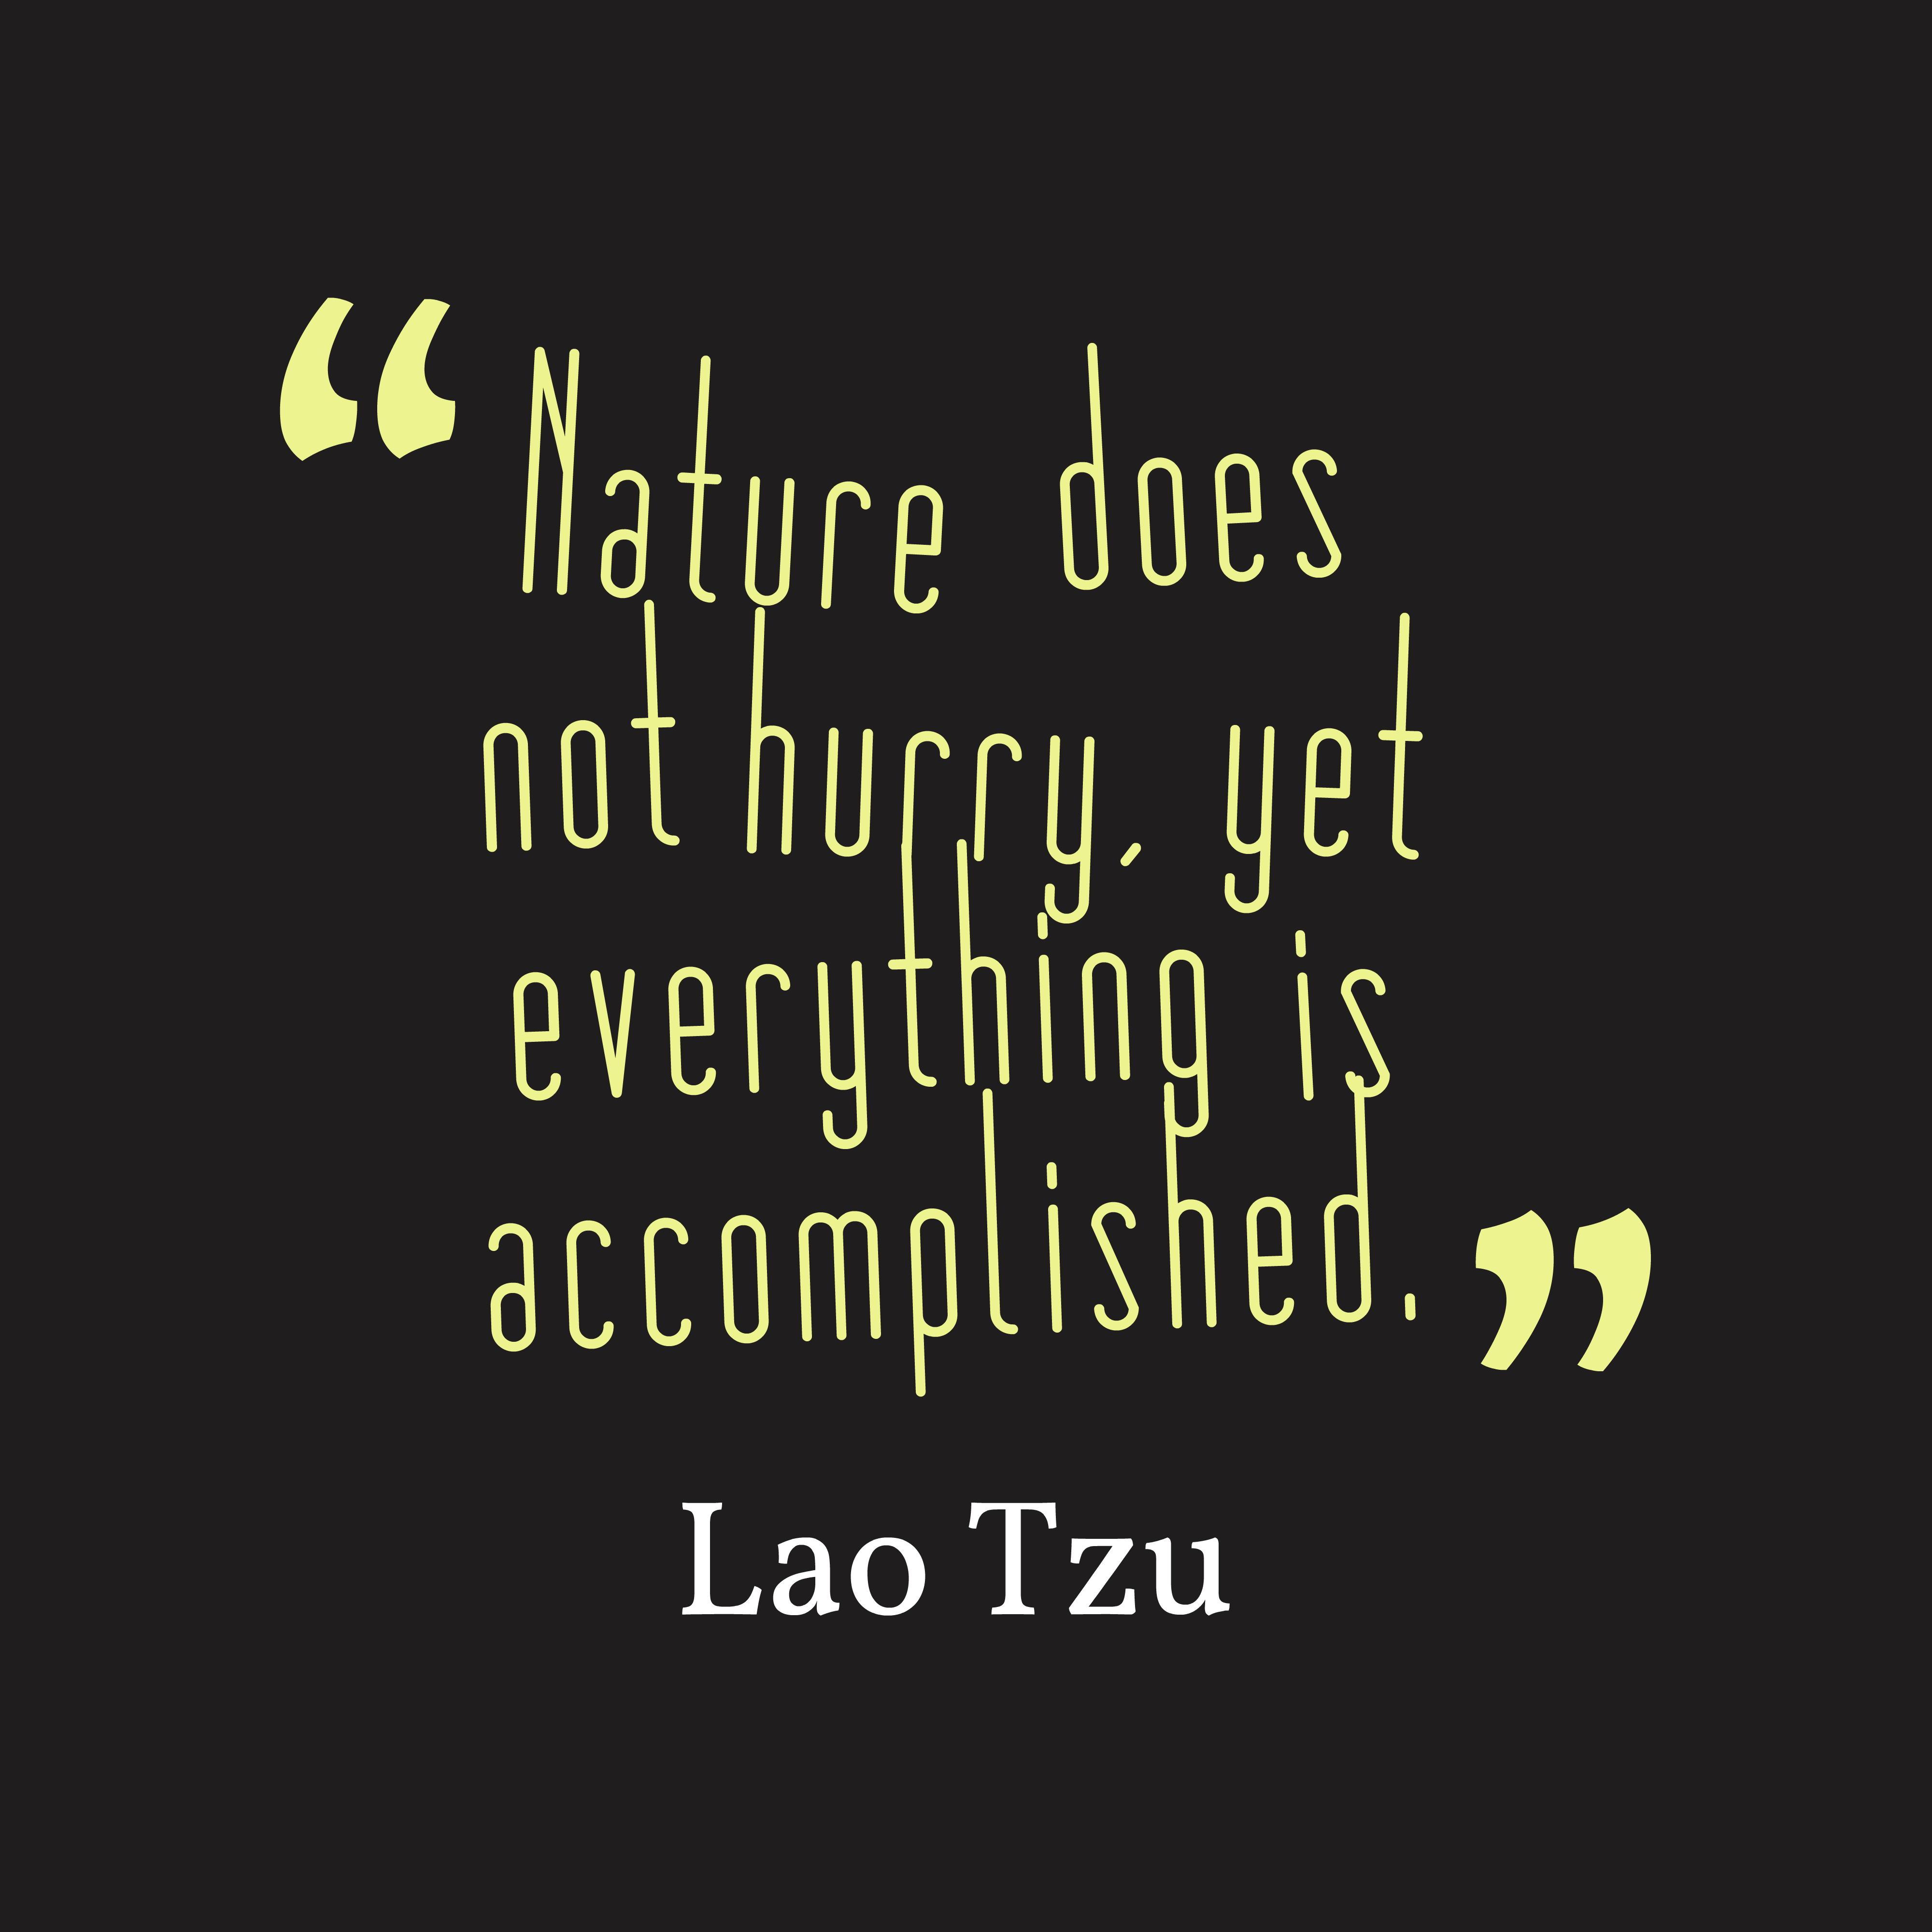 Lao Tzu Quotes Life 84 Best Lao Tzu Quotes Images